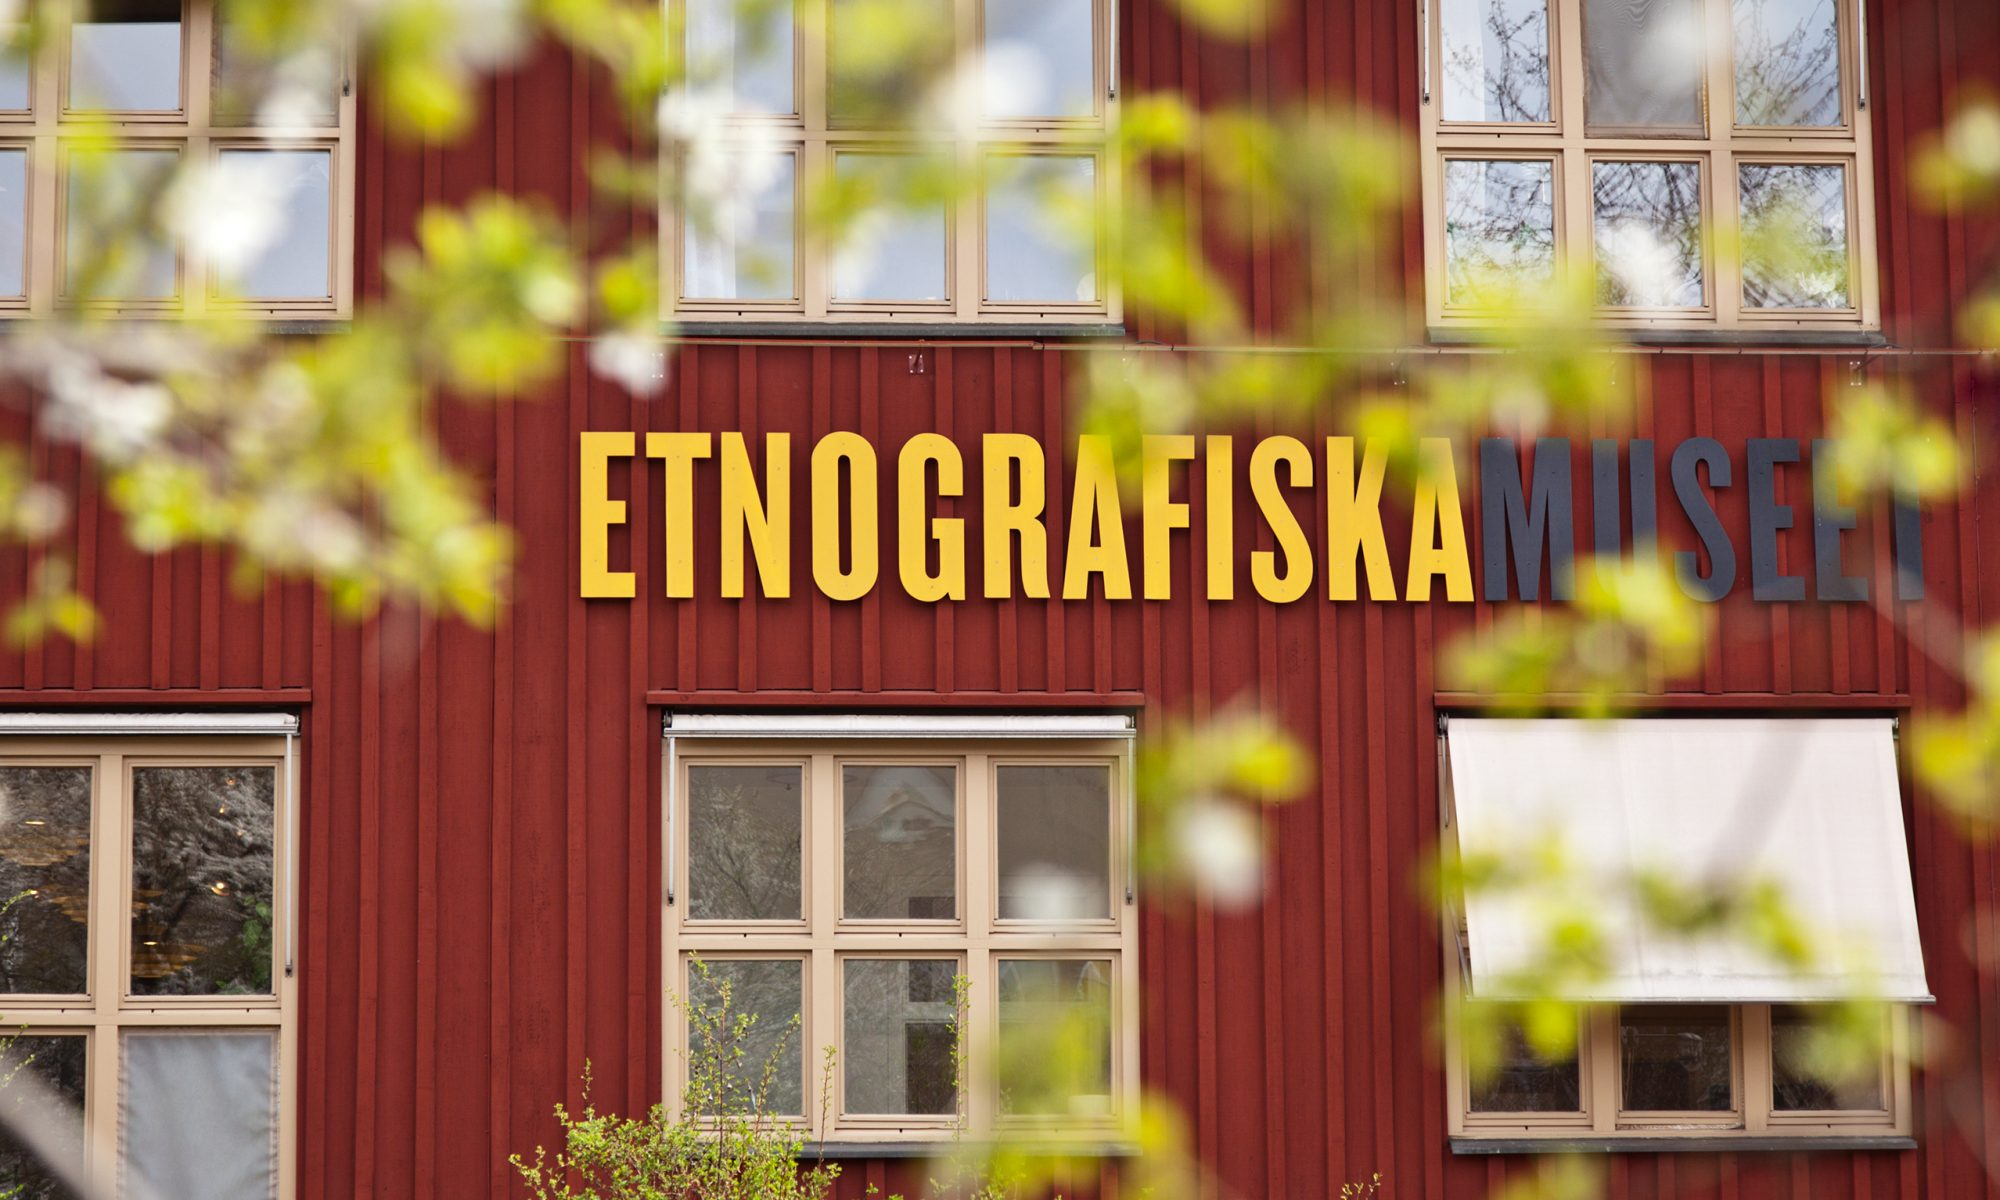 The Museum of Ethnograpy